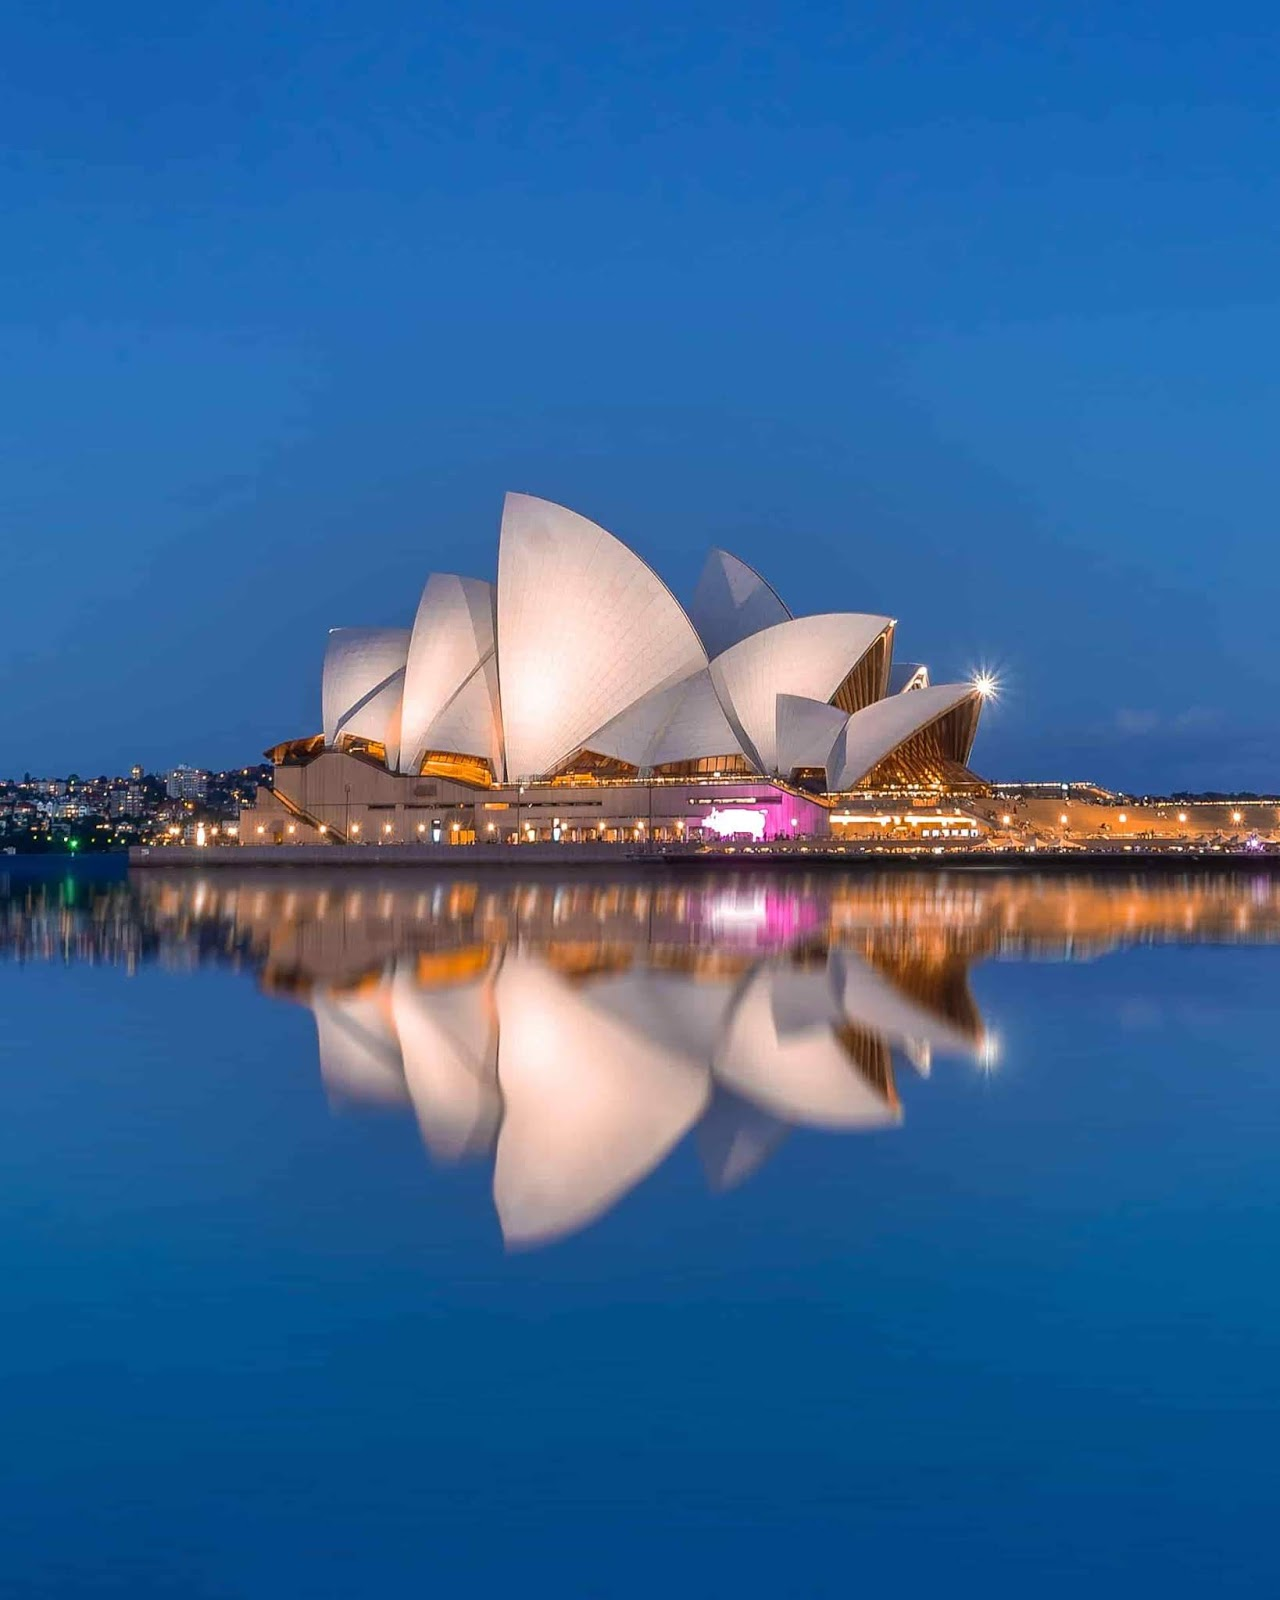 View of Sydney Opera House with reflection on Sydney Harbour, Australia